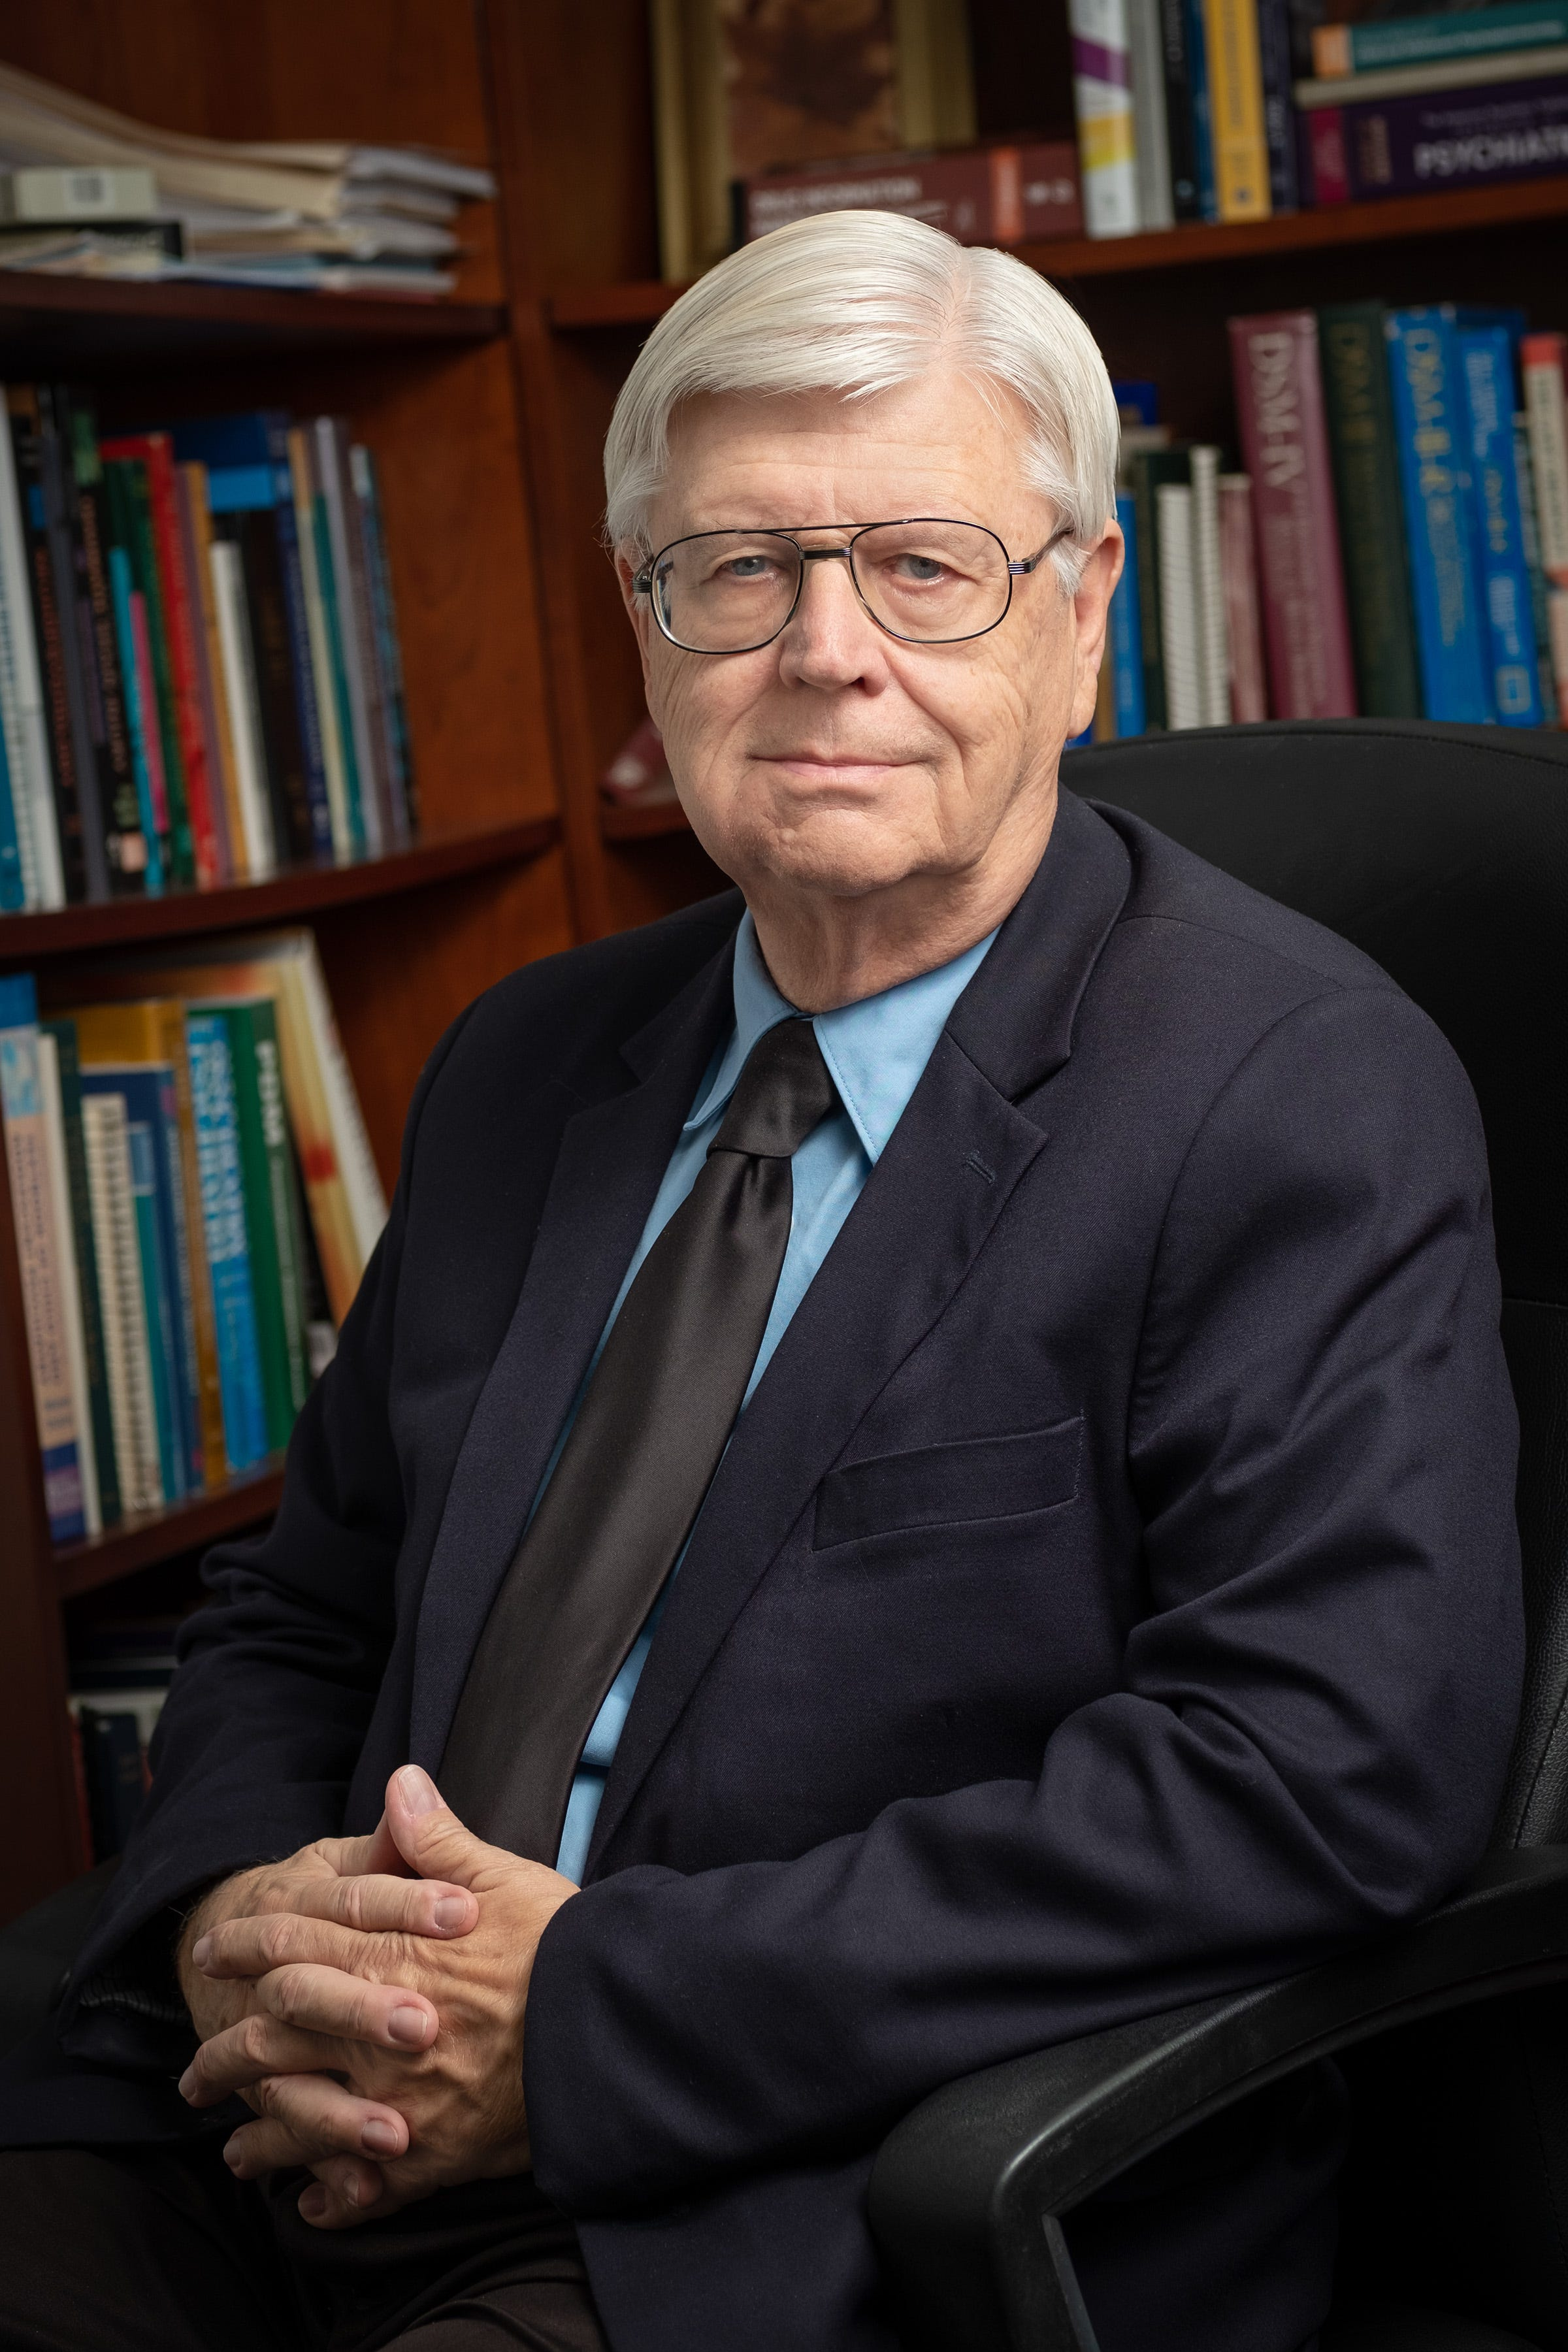 Roger Burket is a child psychiatrist, professor and chief of developmental disorders at University of Virginia Dept. of Psychiatry and Neurobehavioral Sciences in Charlottesville. Burket works with UVA's pediatric telepsychiatry program to help bring mental health services to kids in underserved areas.